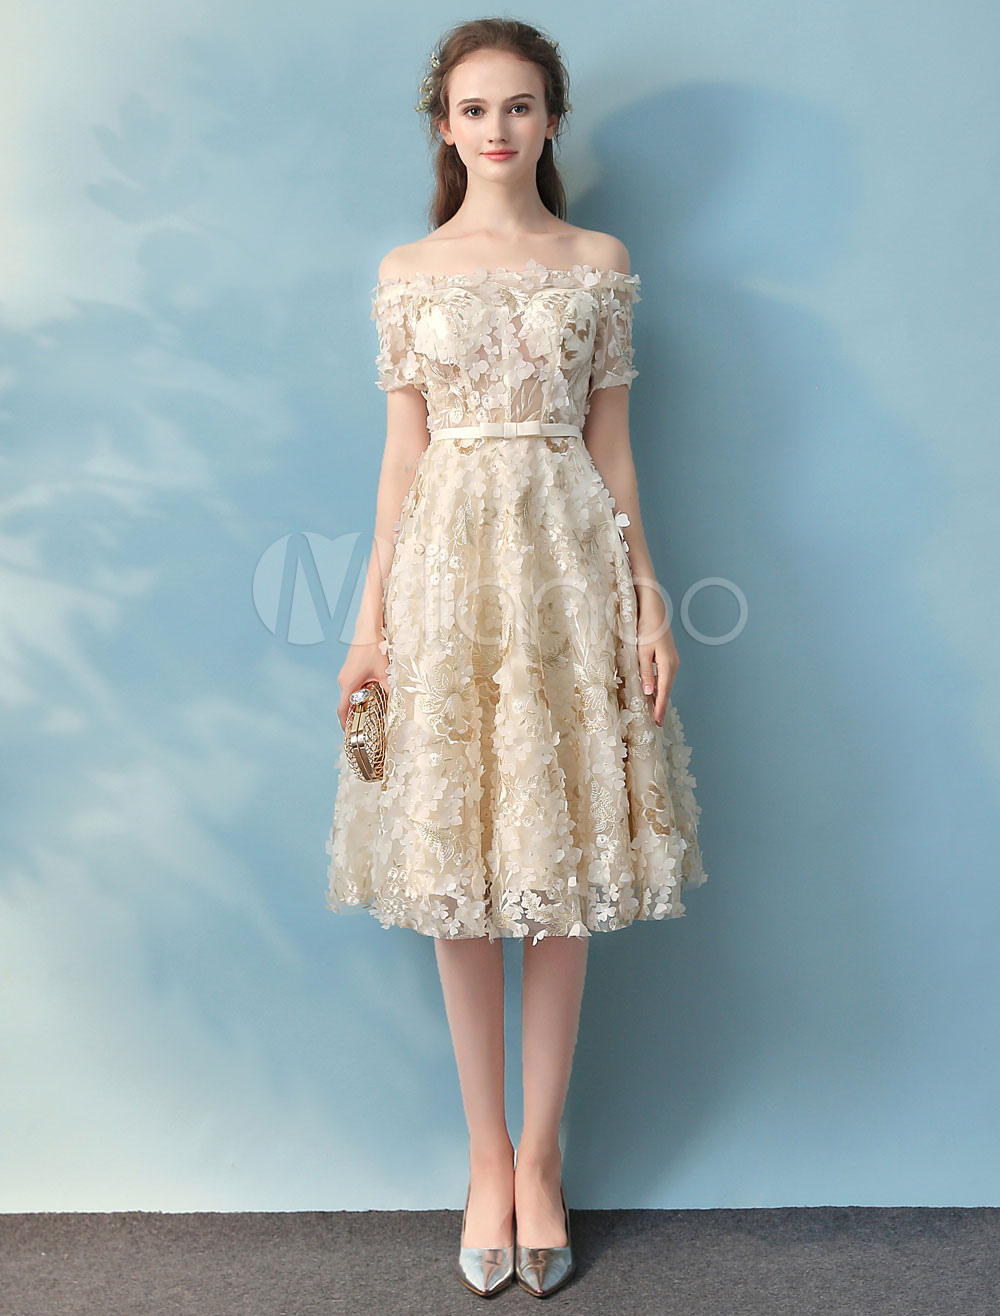 Lace Homecoming Dress Off The Shoulder Prom Dresses Vanilla Cream ...